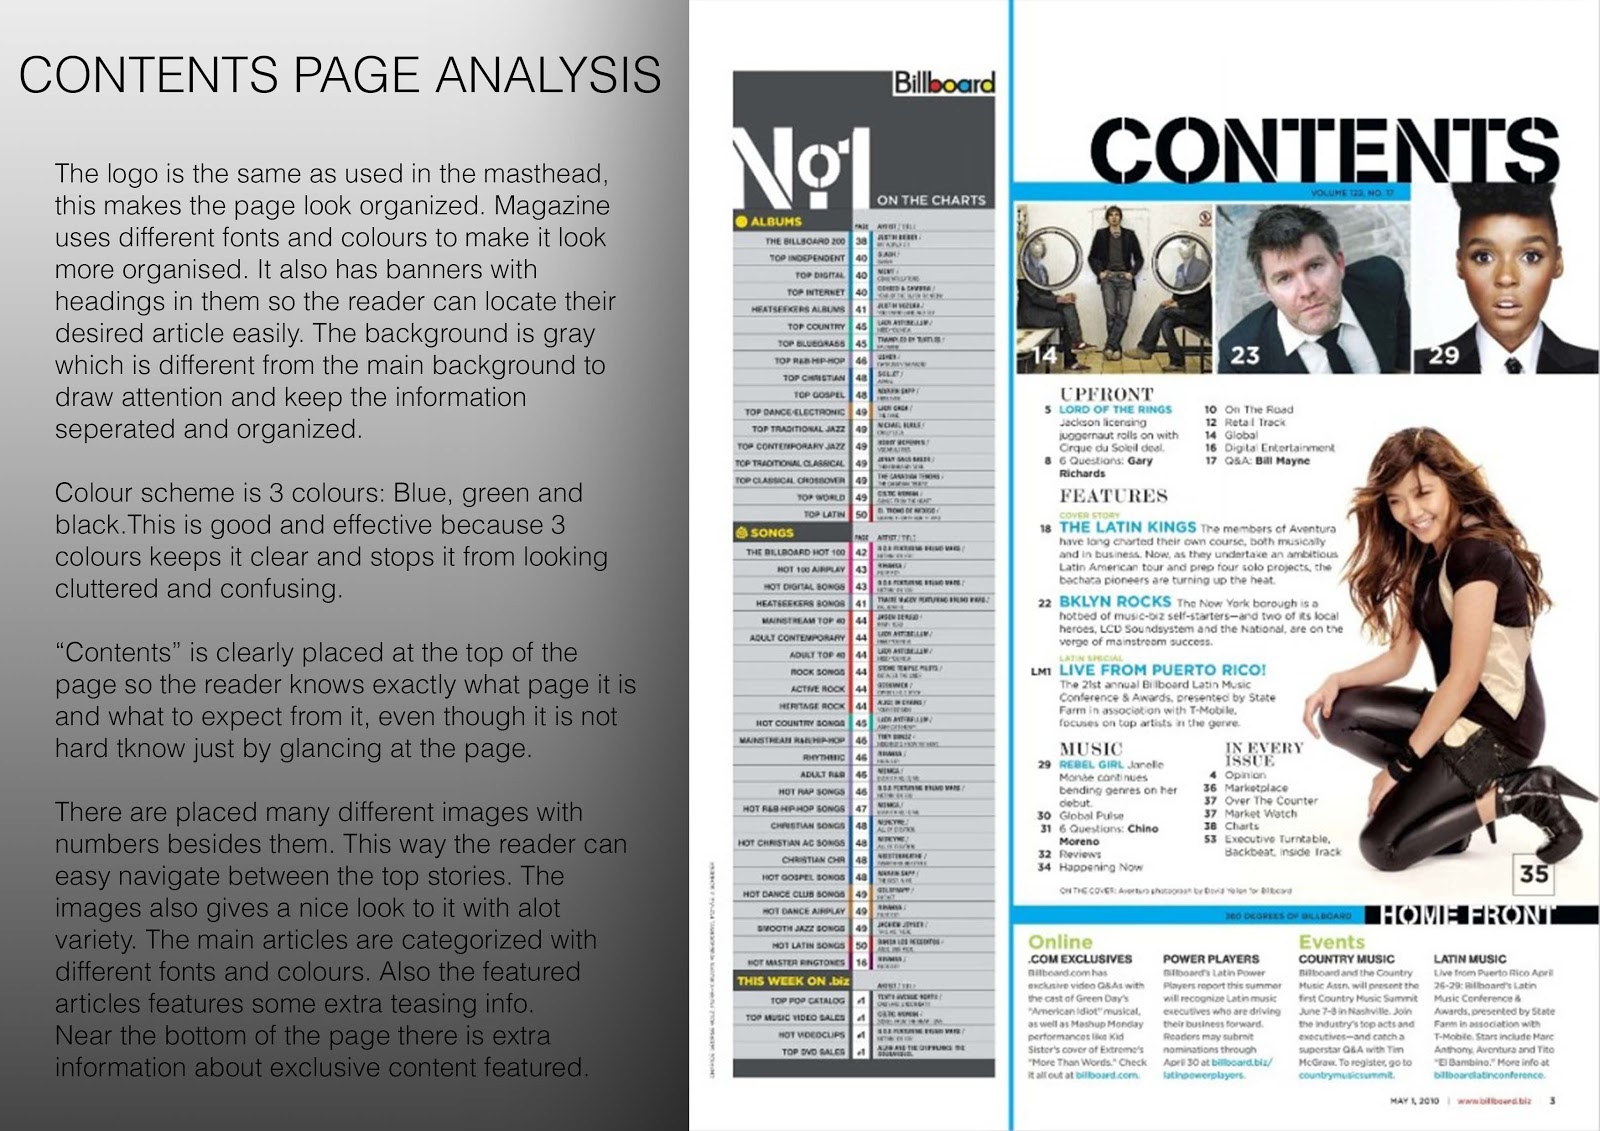 Andreas Steensaeth Media Coursework: Billboard Contents Page